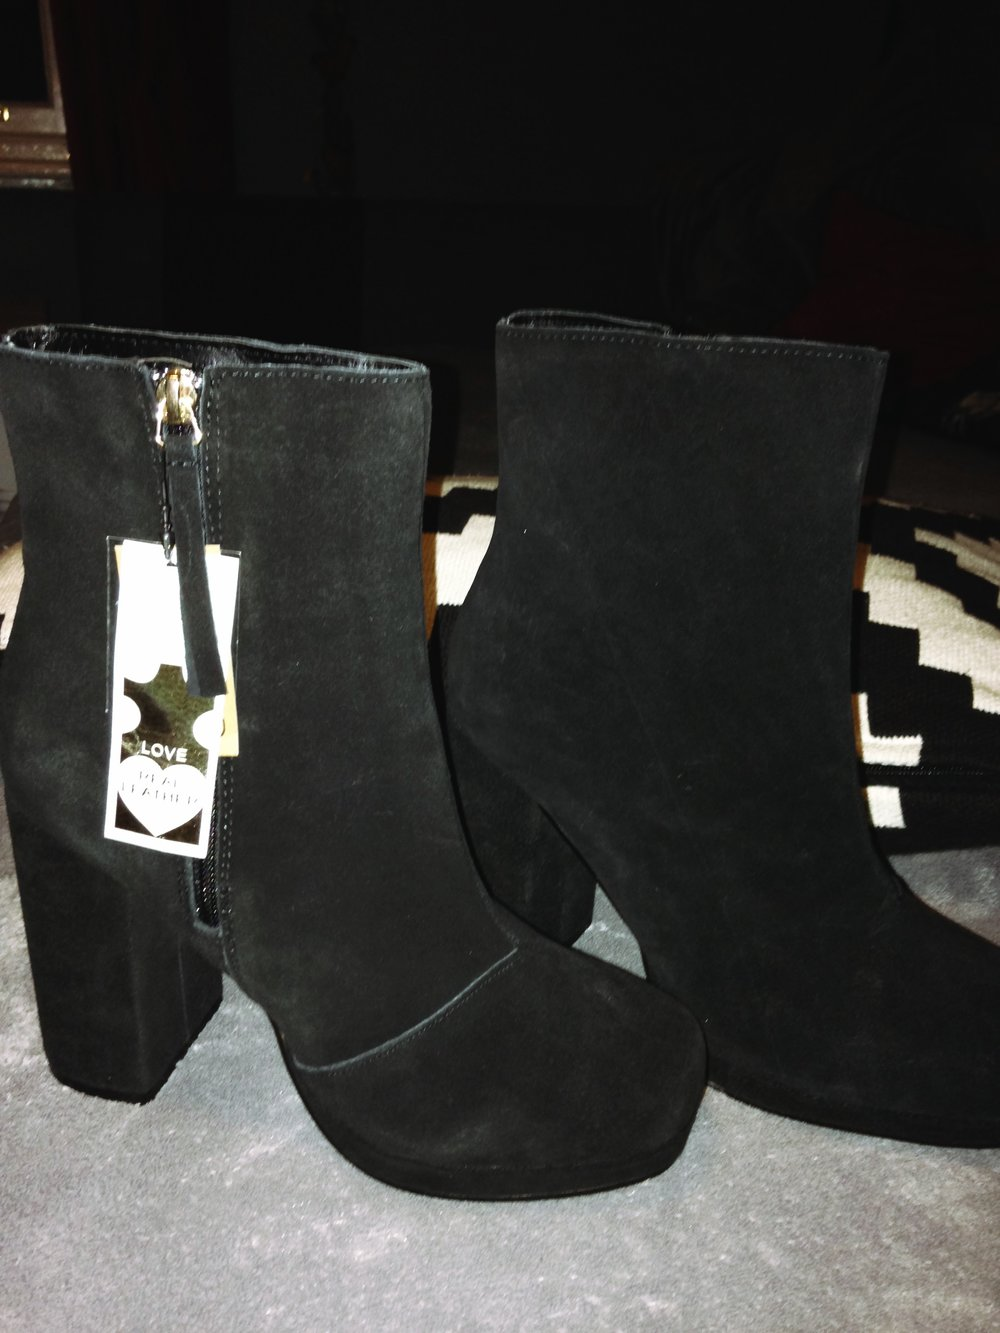 Second purchase, these 100% suede leather 70s style ankle boots from Primarks